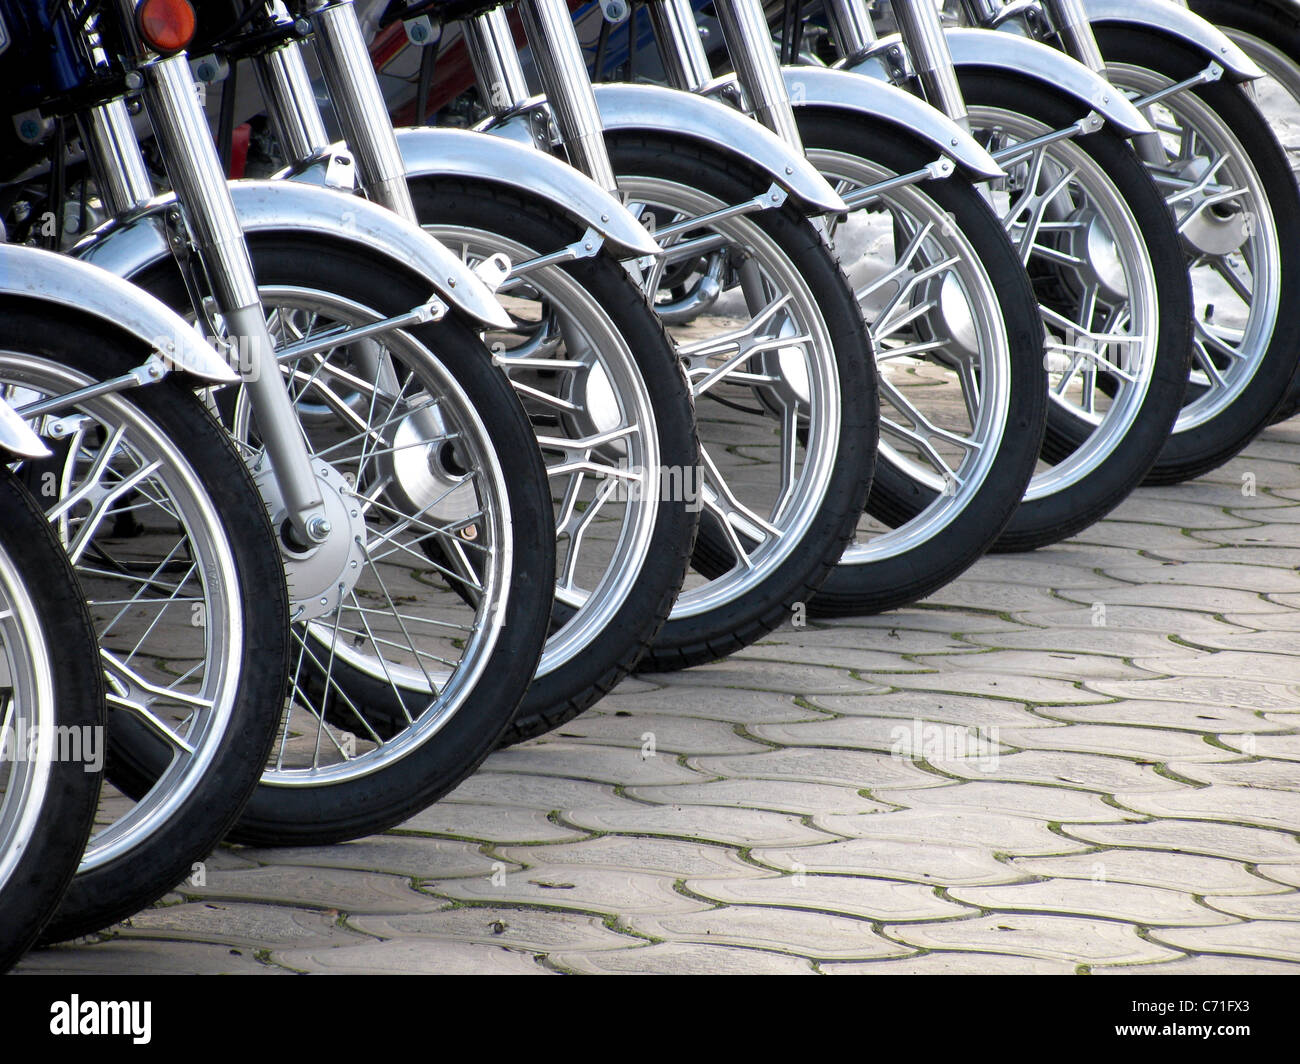 row of motorcycle wheels - Stock Image